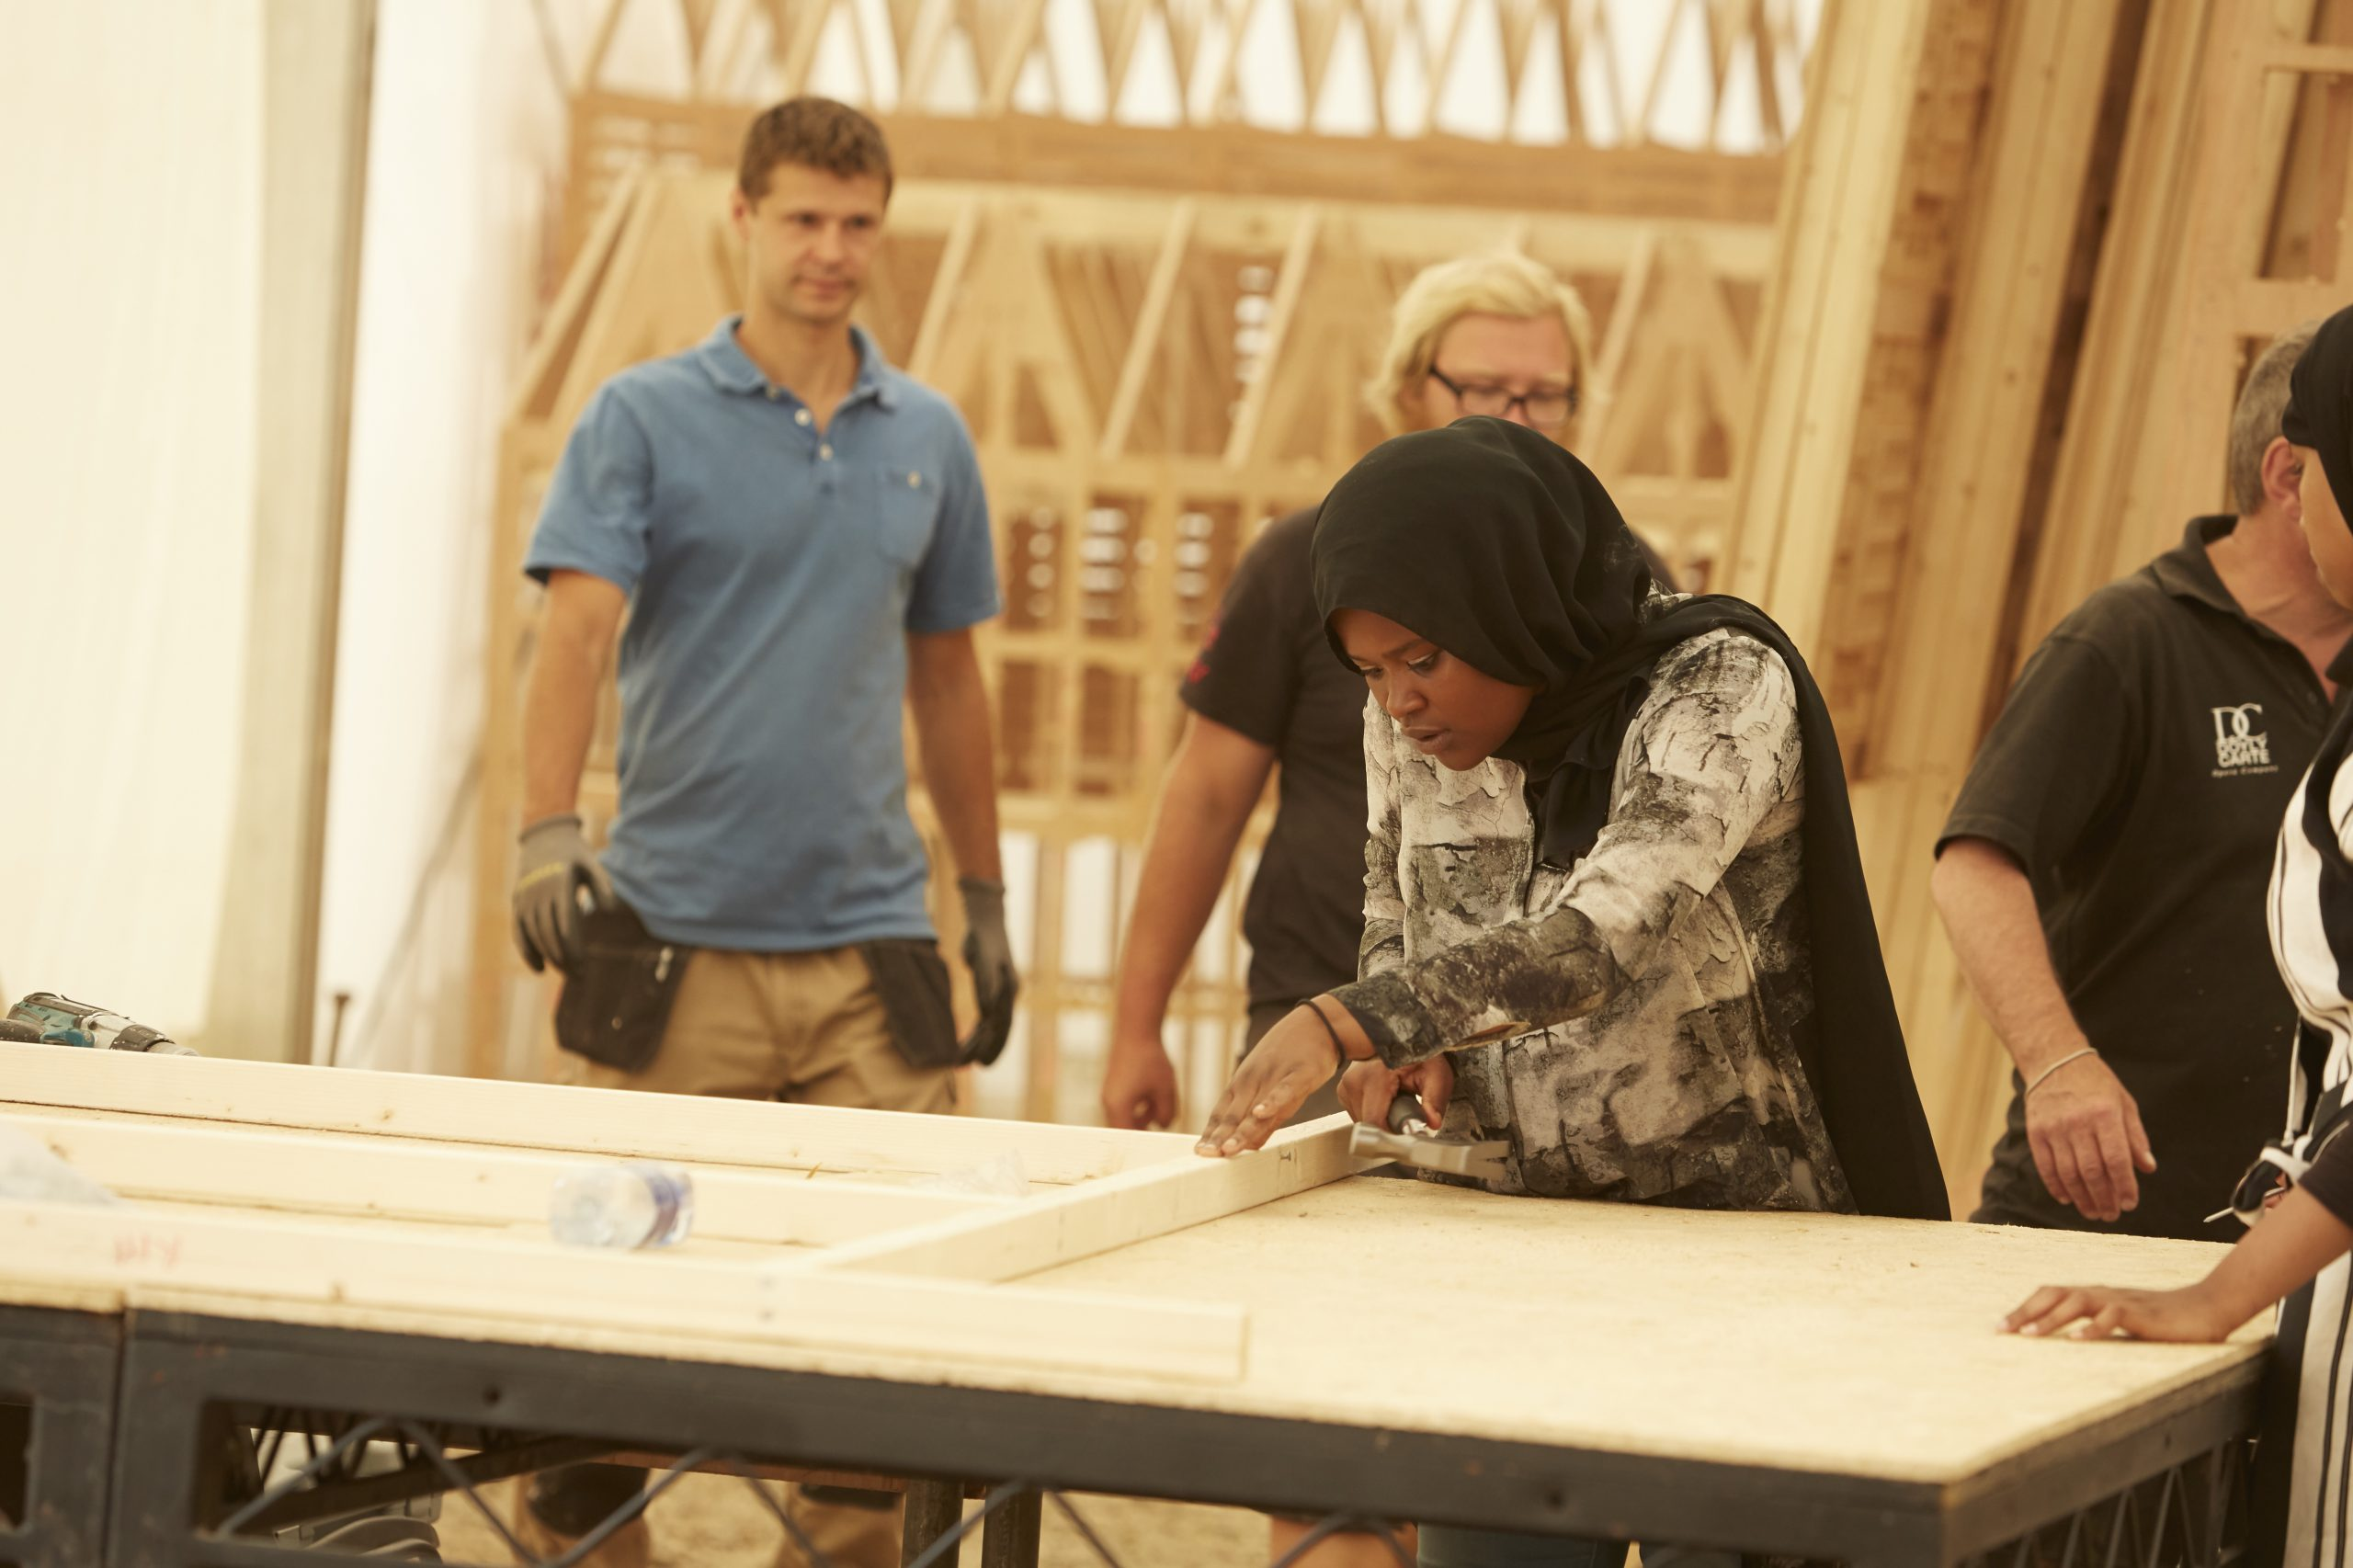 London 1666 participants working on carpentry